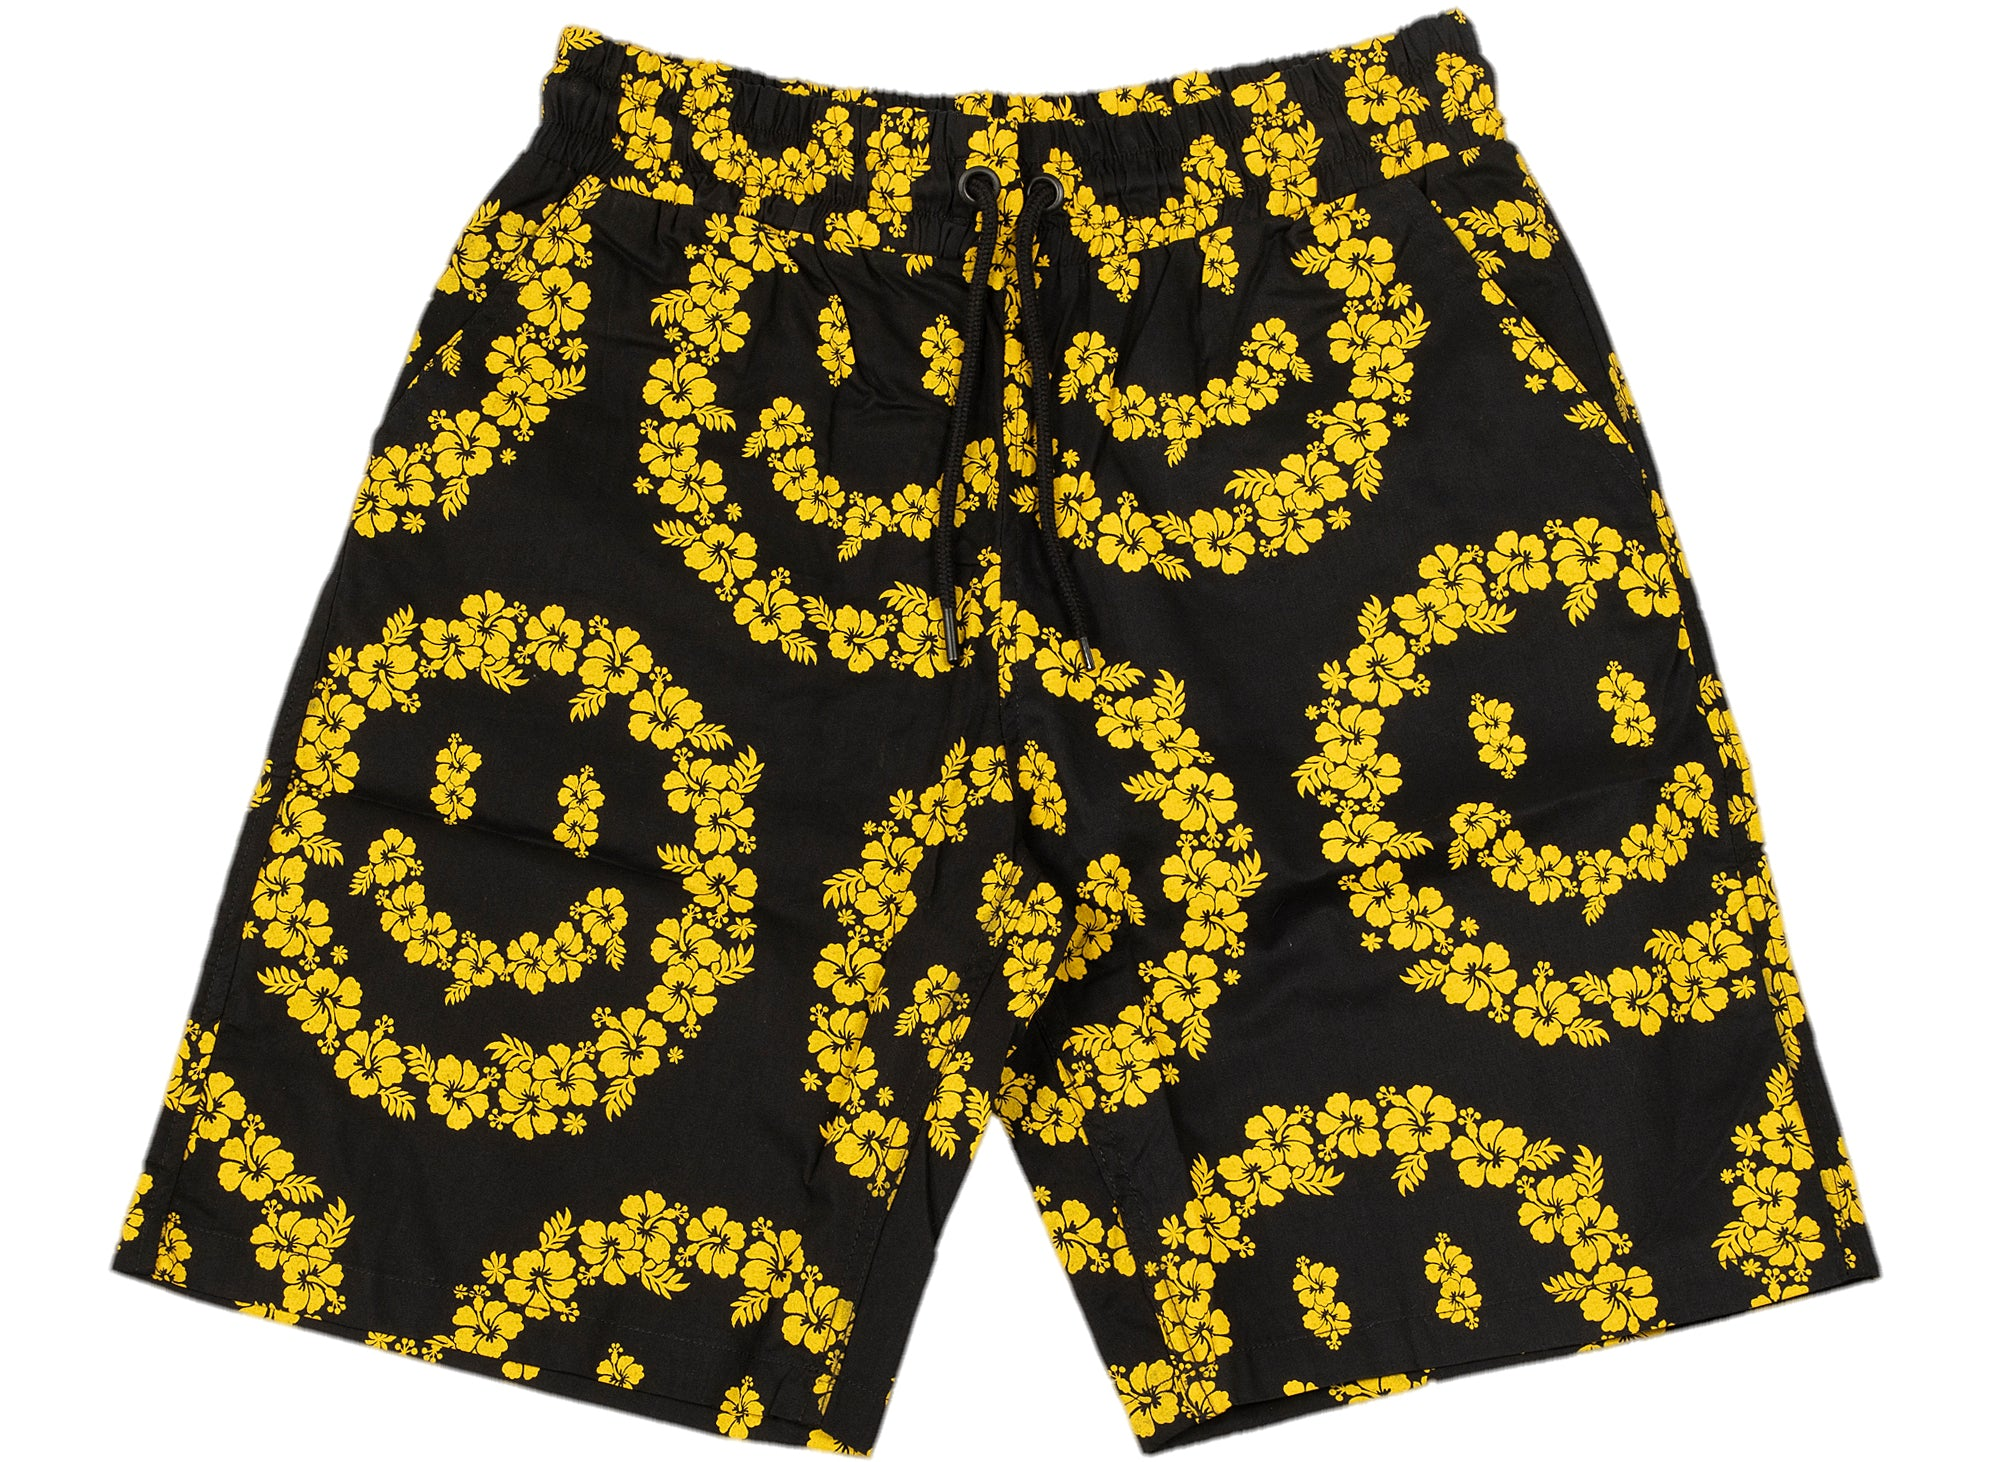 Chinatown Market Smiley Floral Shorts xld